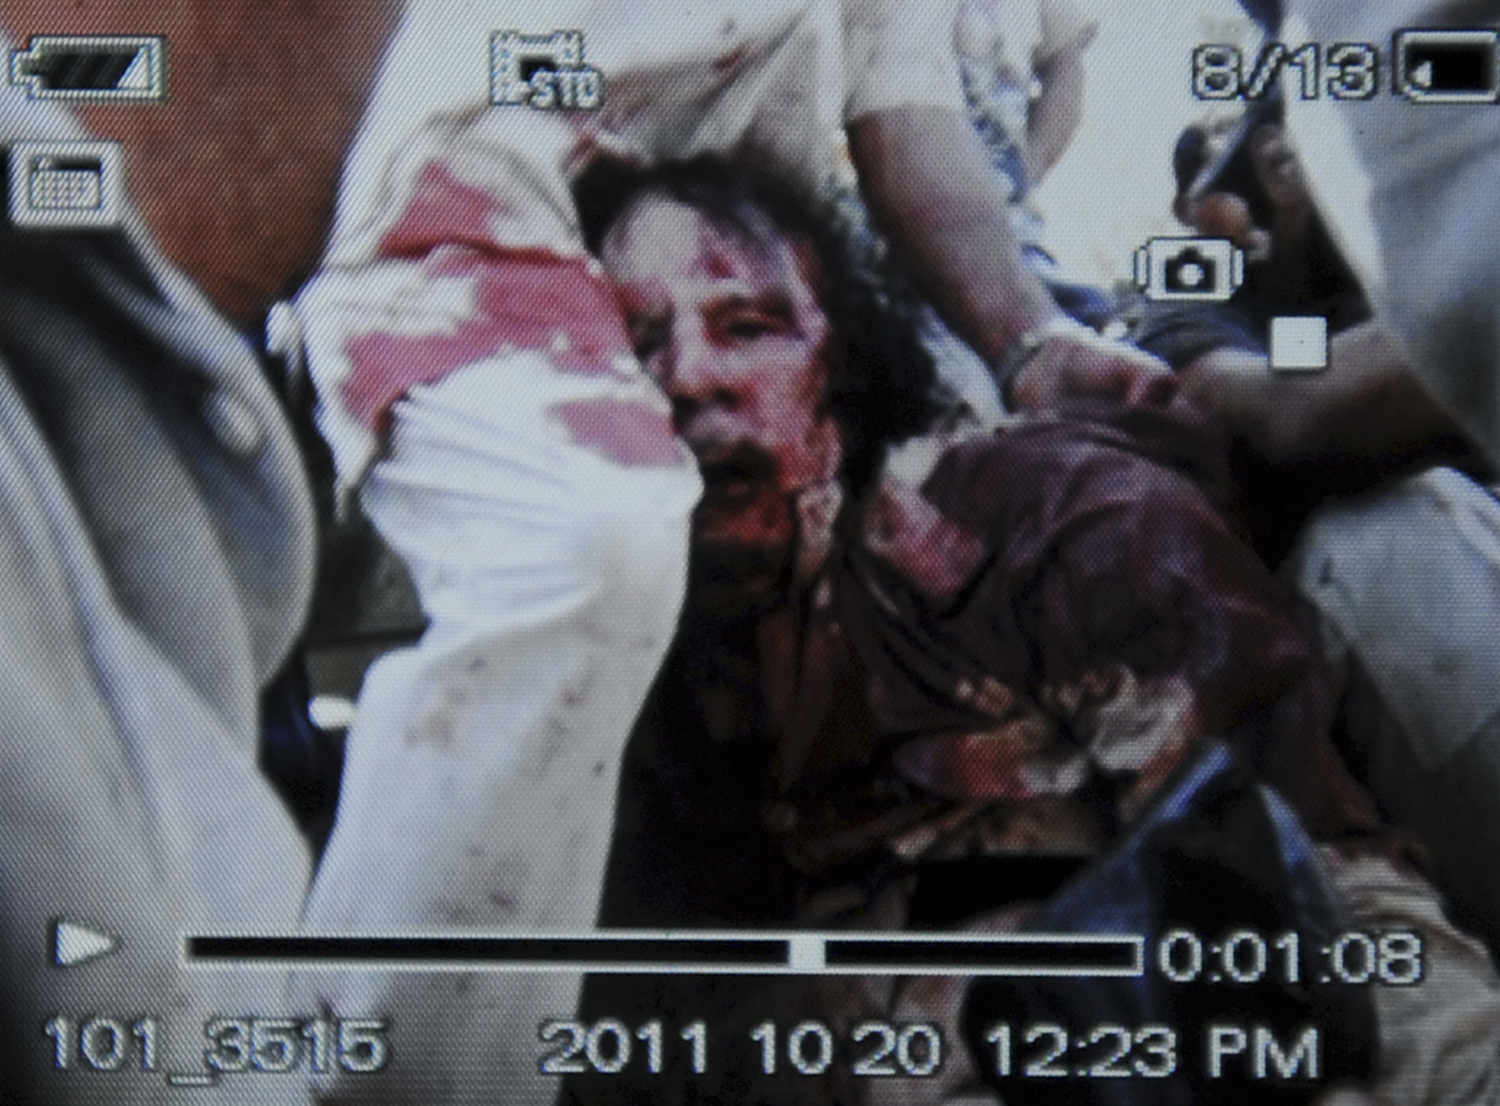 October 20, 2011. An image captured off a cellular phone camera shows the arrest of Libya's strongman Muammar Gaddafi in Sirt.